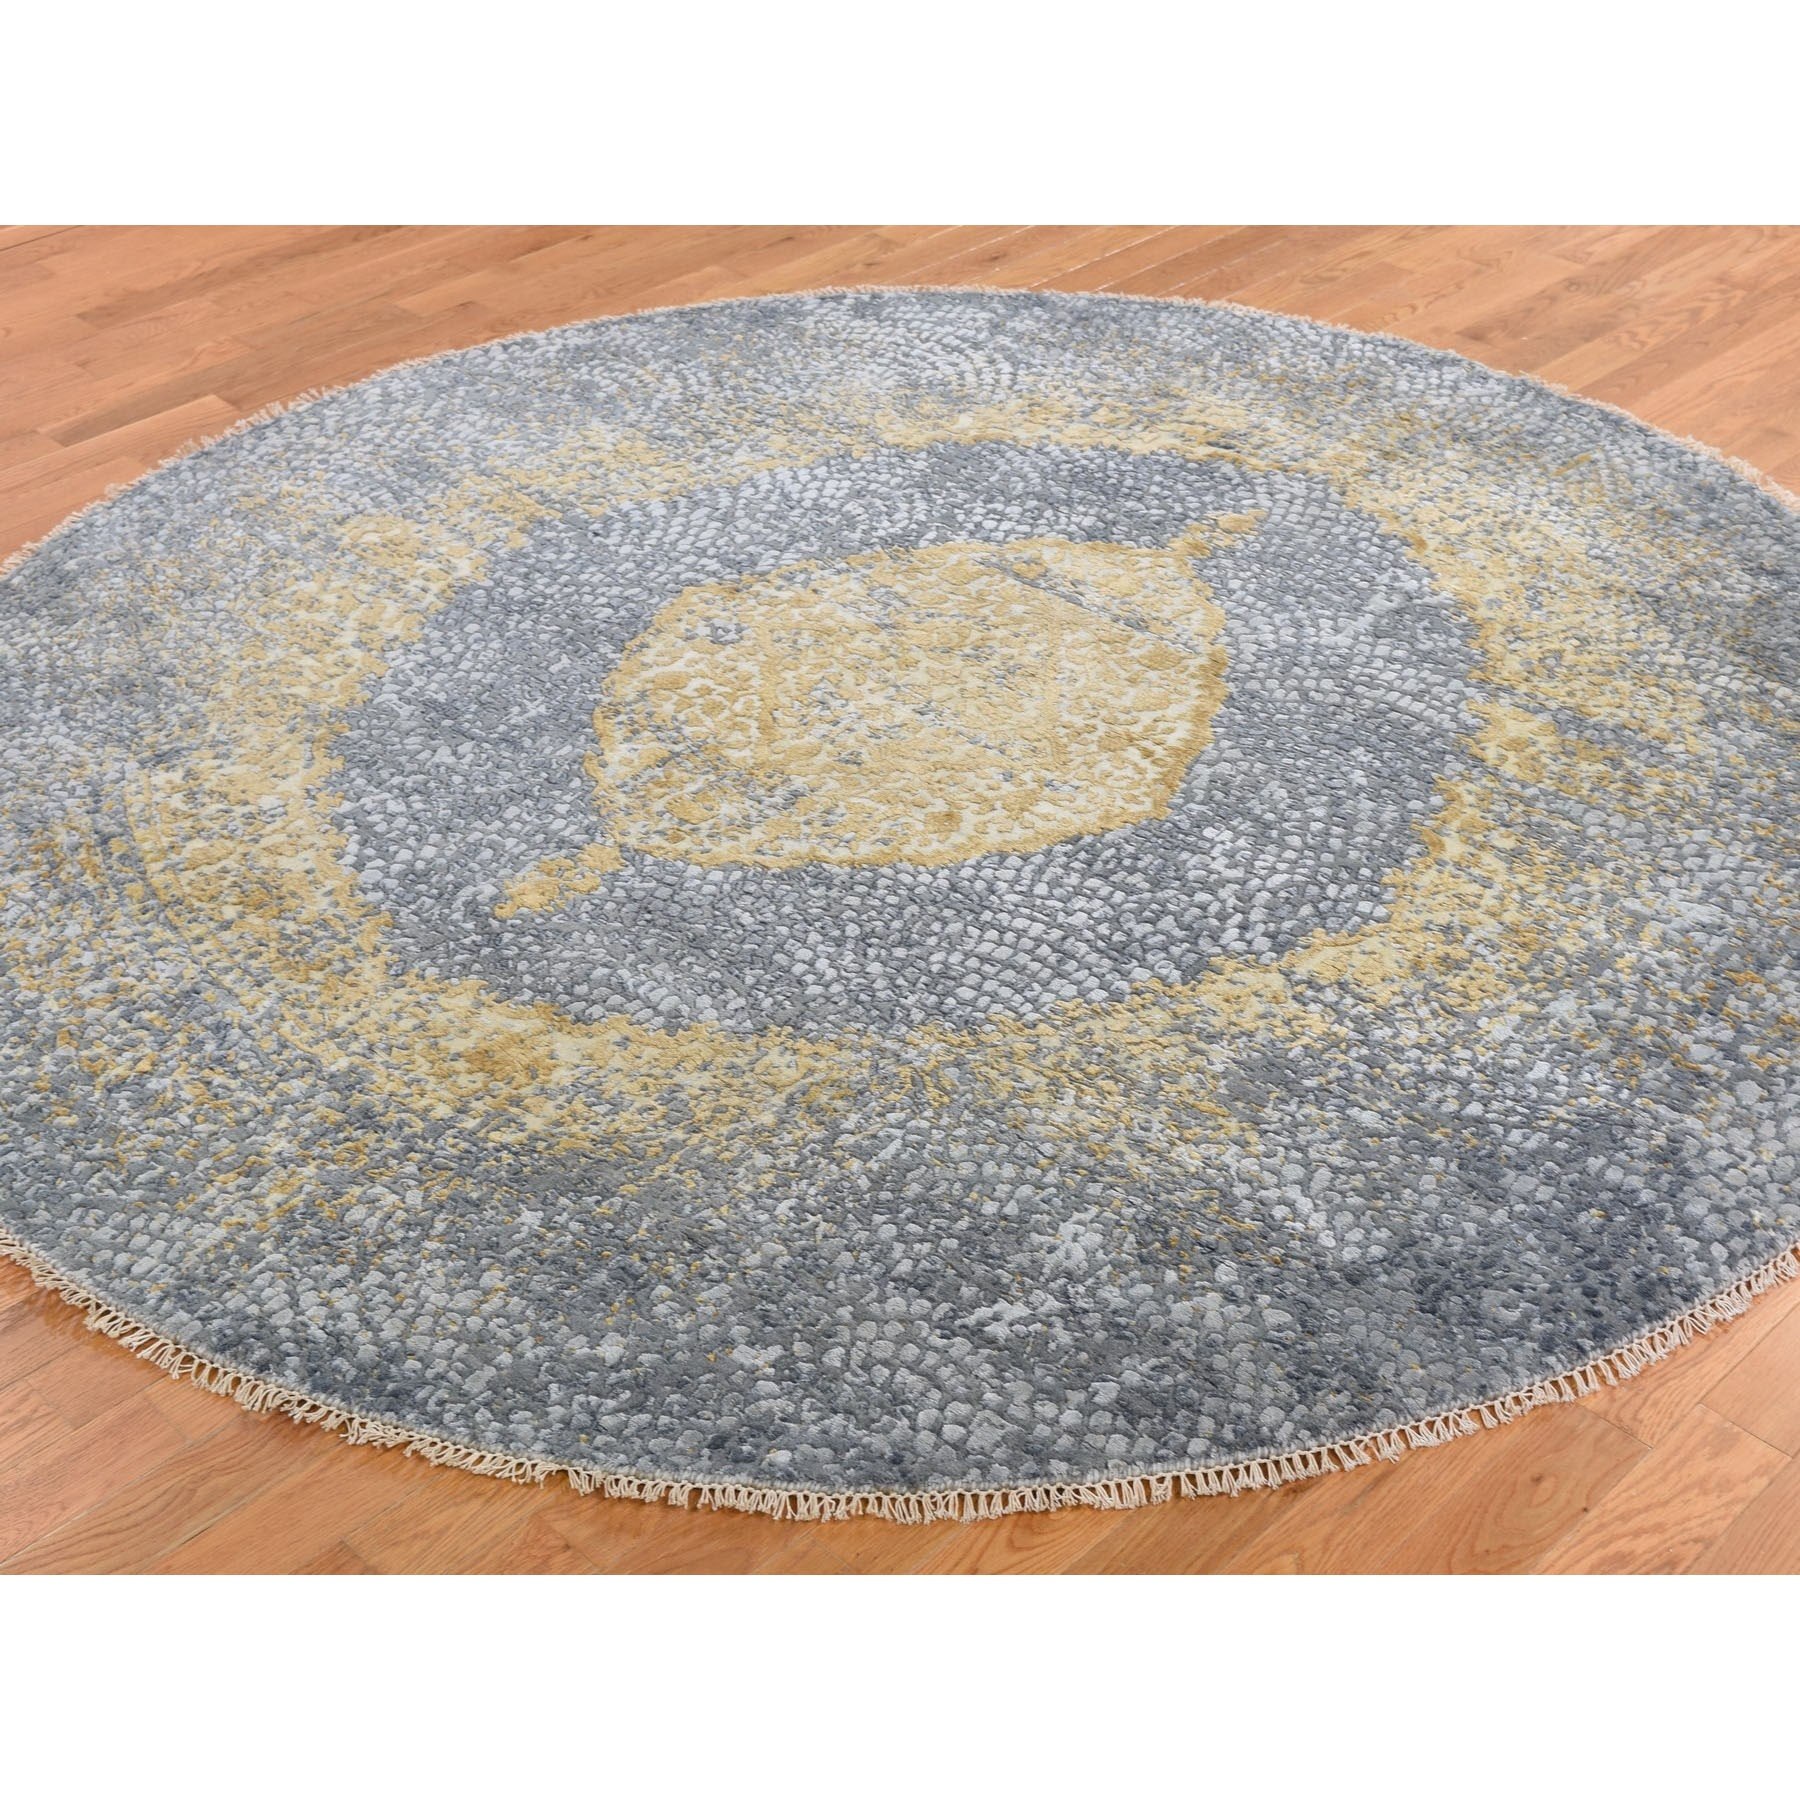 9-10 x9-10  Round Gold Persian Design Wool And Pure Silk Hand Knotted Oriental Rug